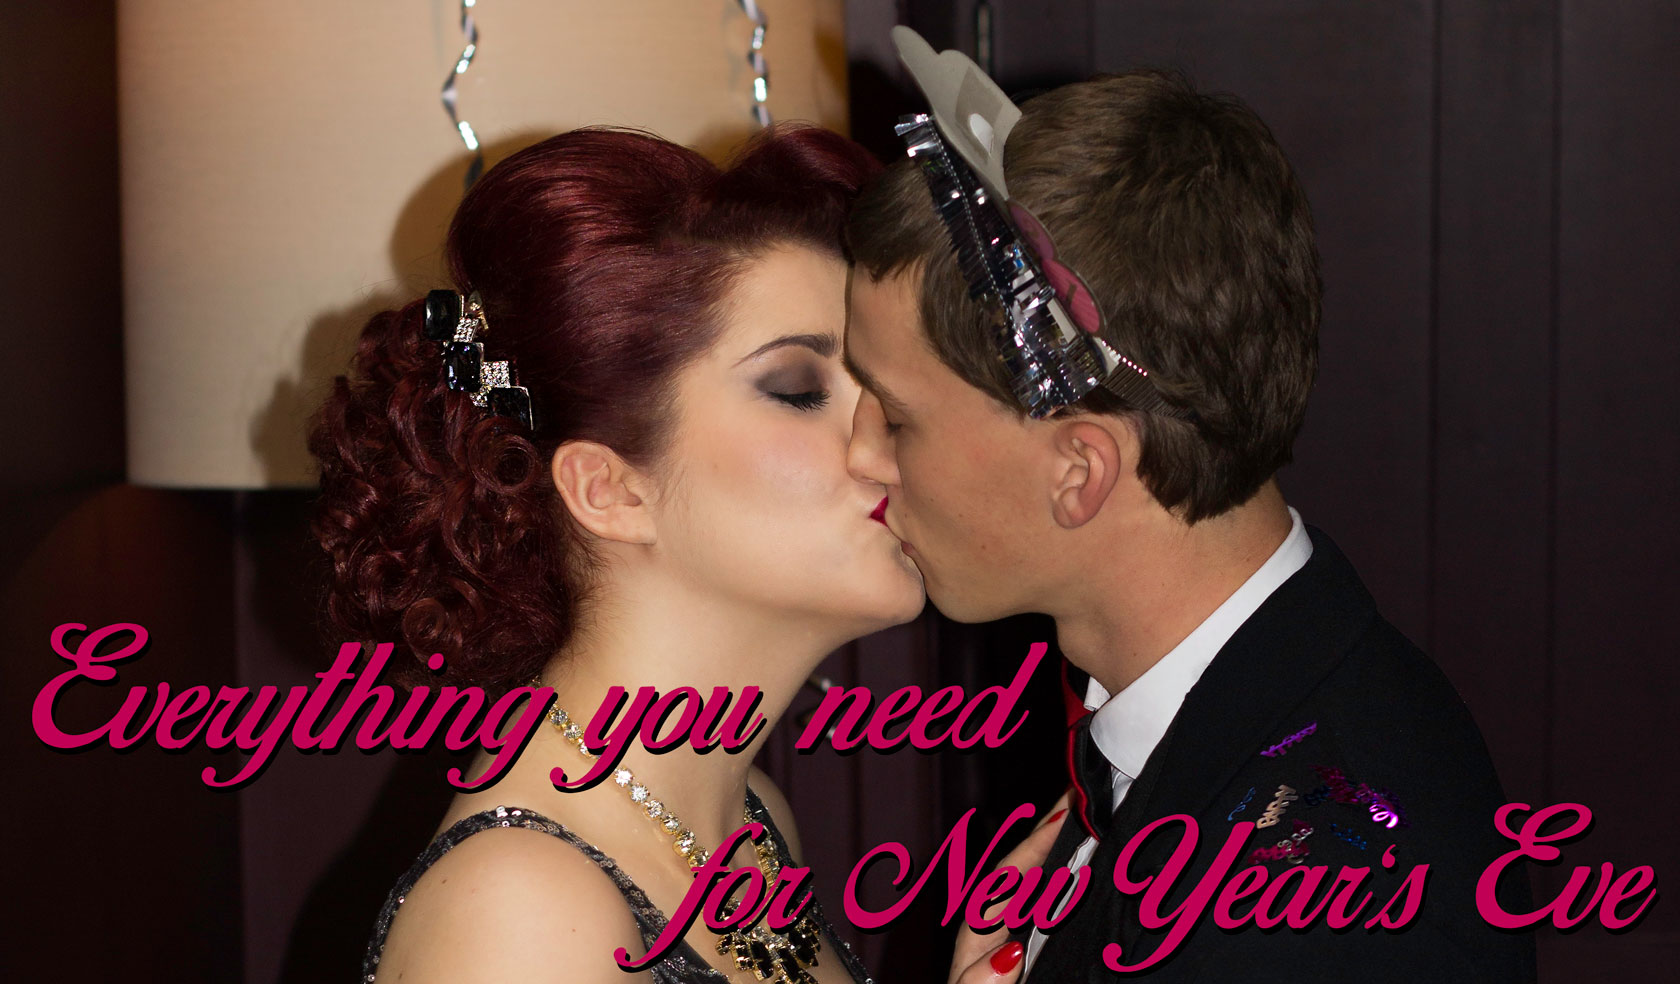 shop everything you need for a vintage Pinup new year party